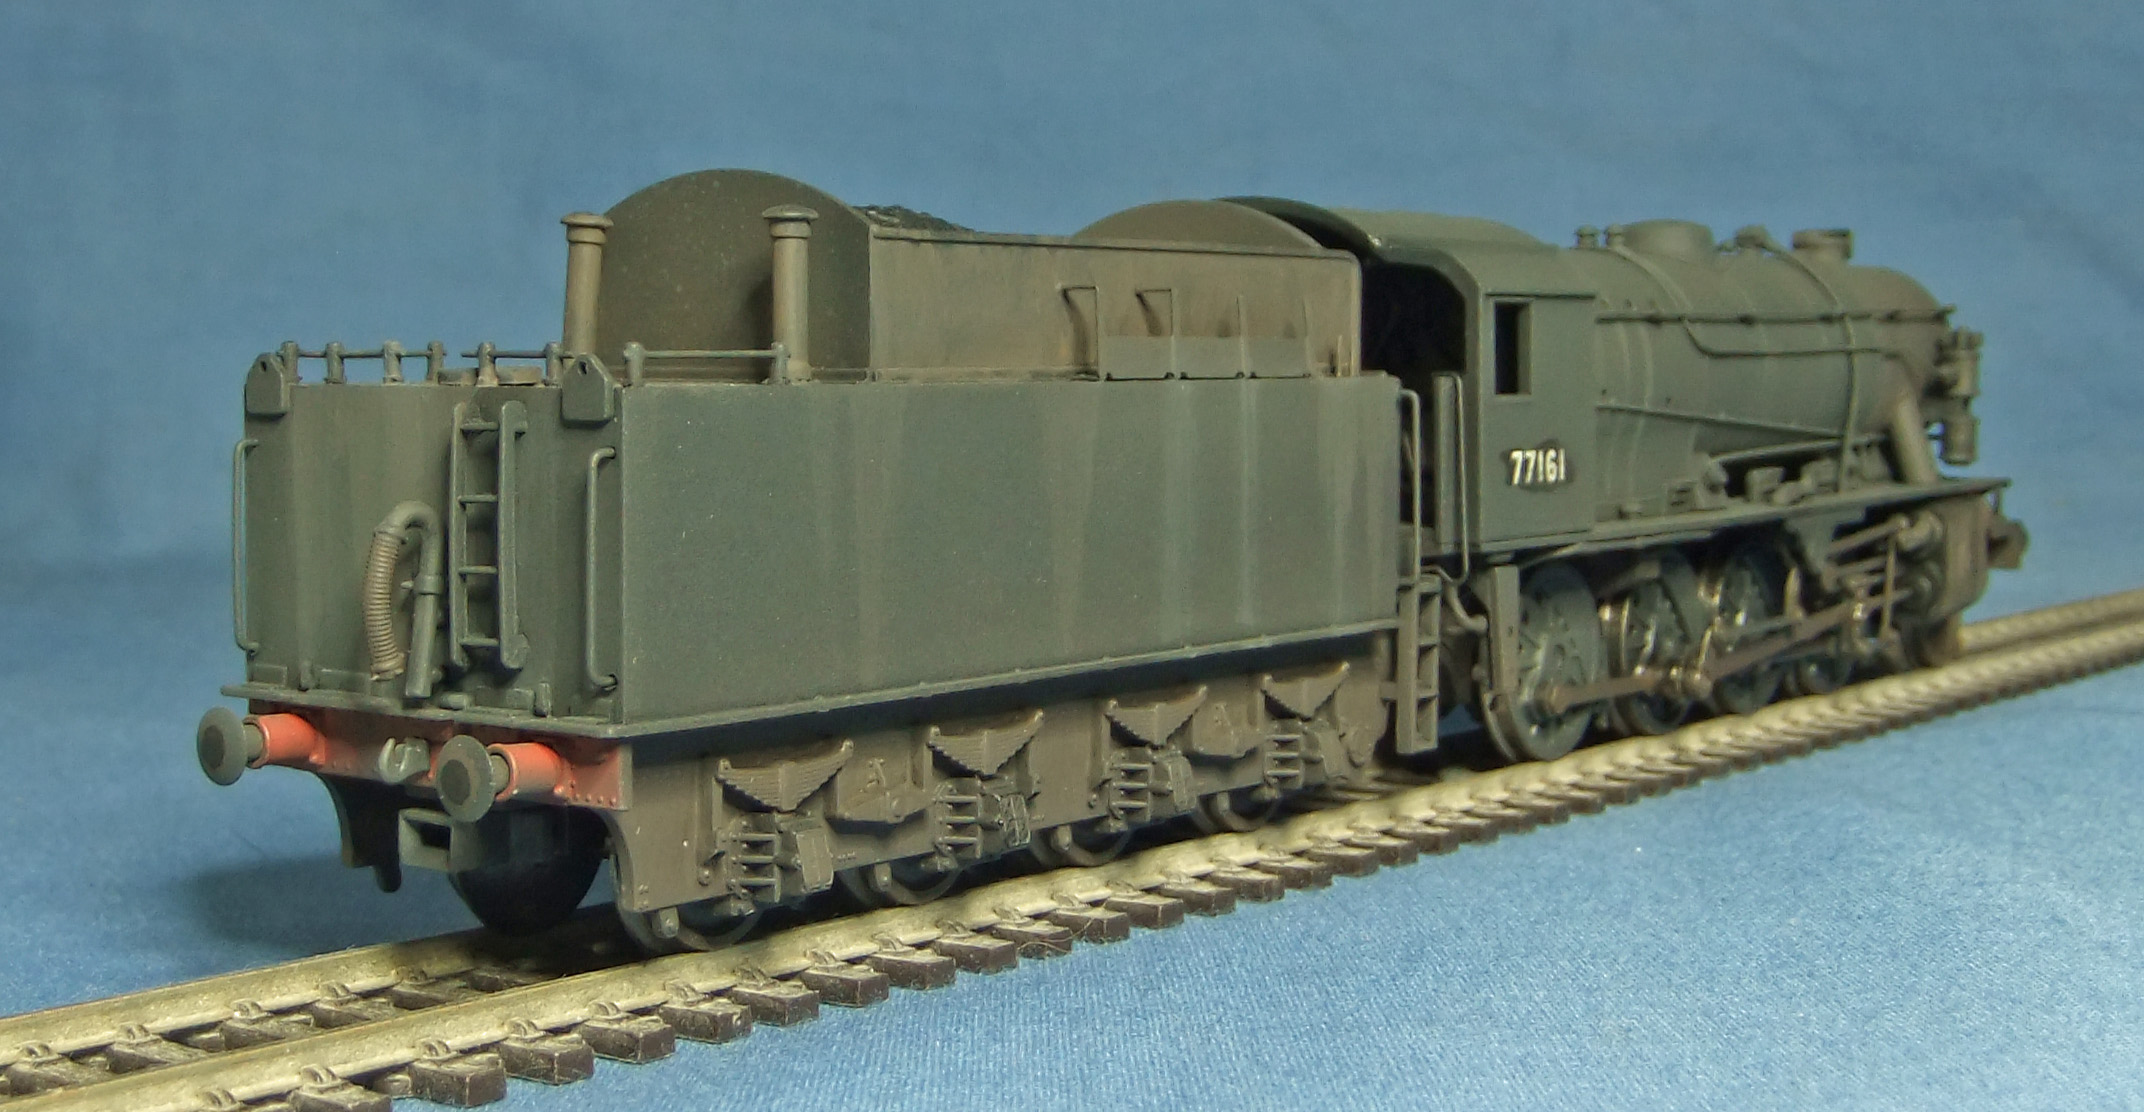 WD 2-8-0 No.77161 tender detail